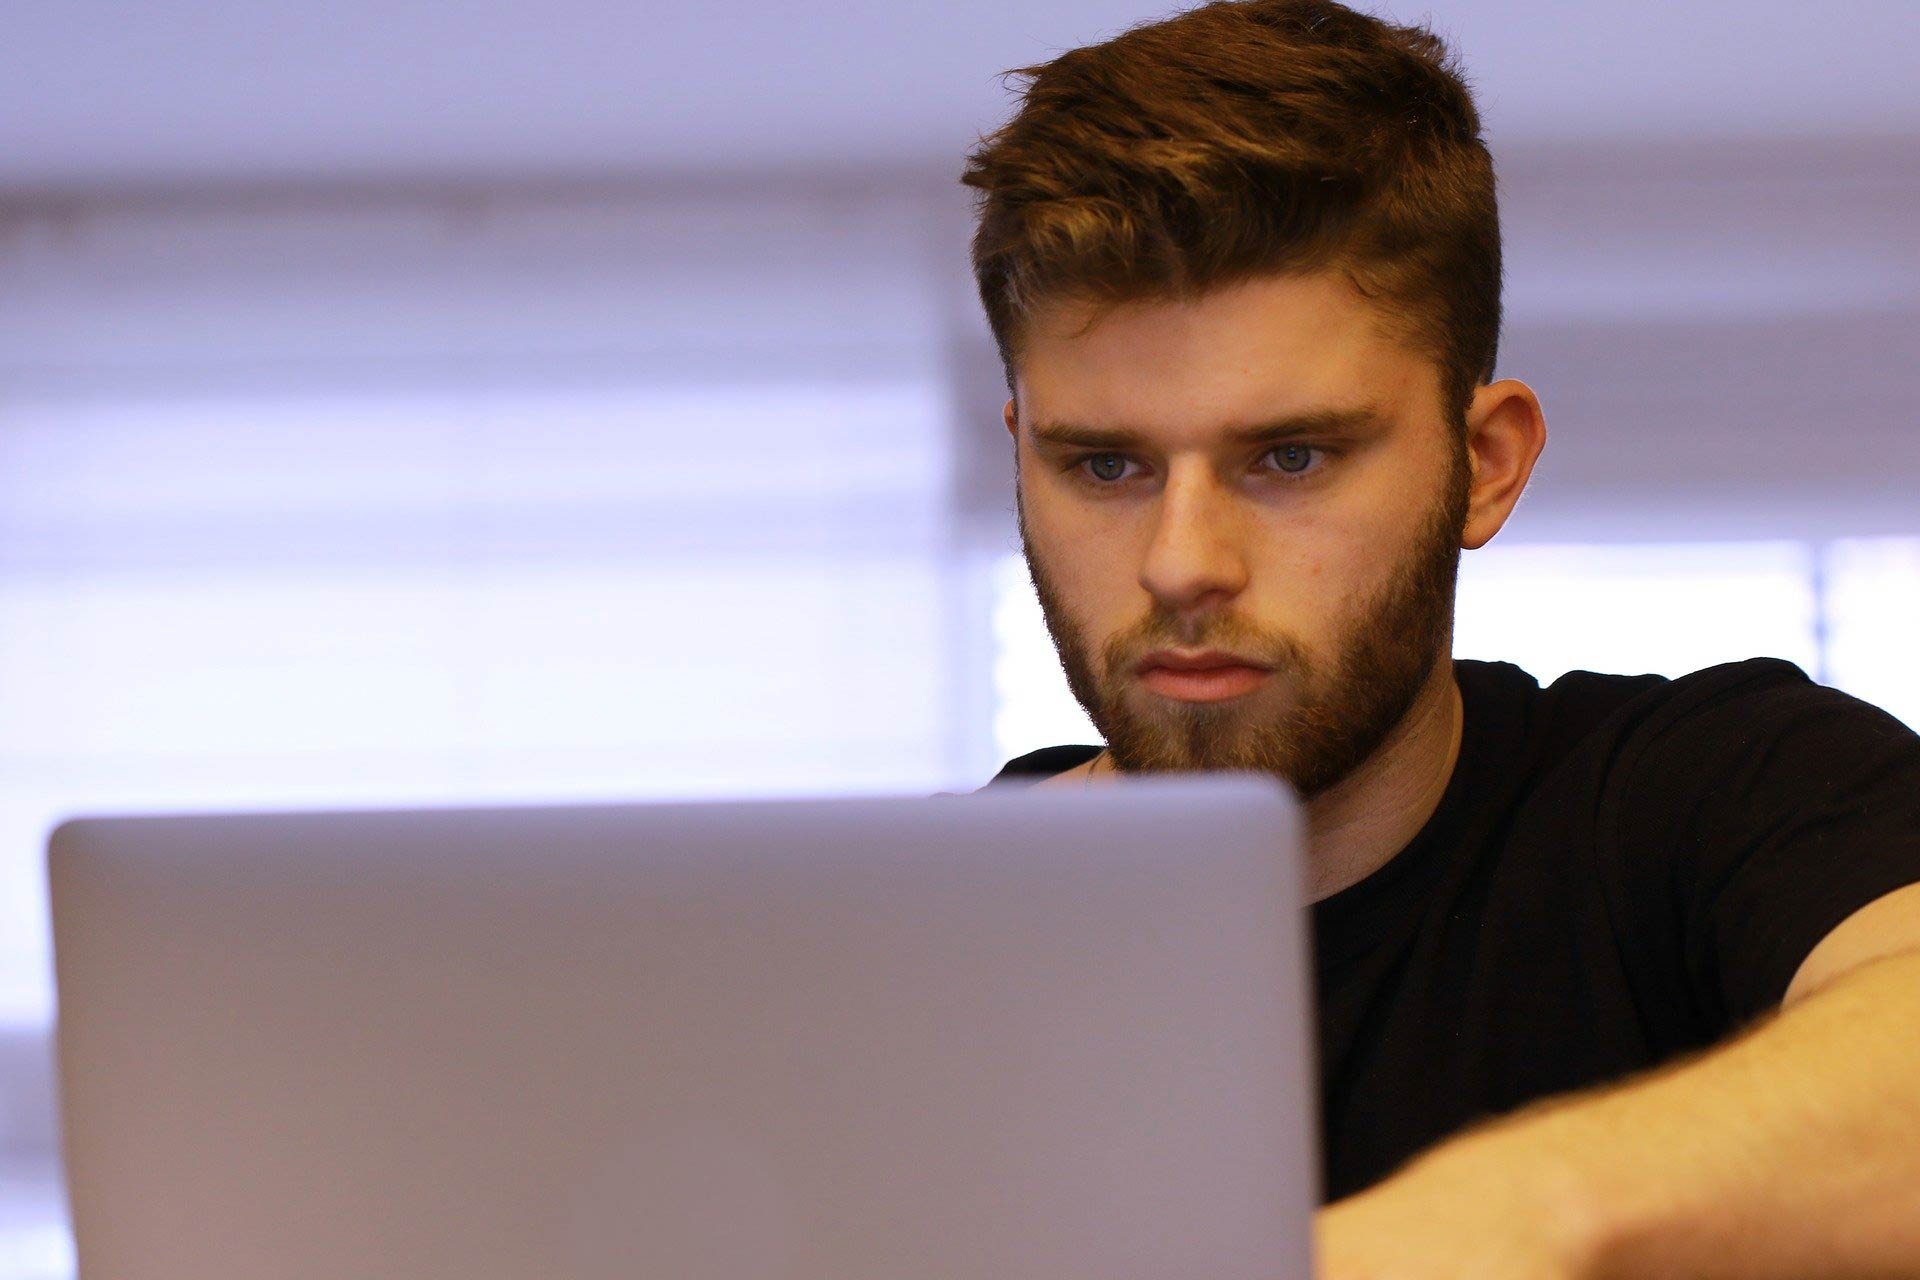 student at work on computer